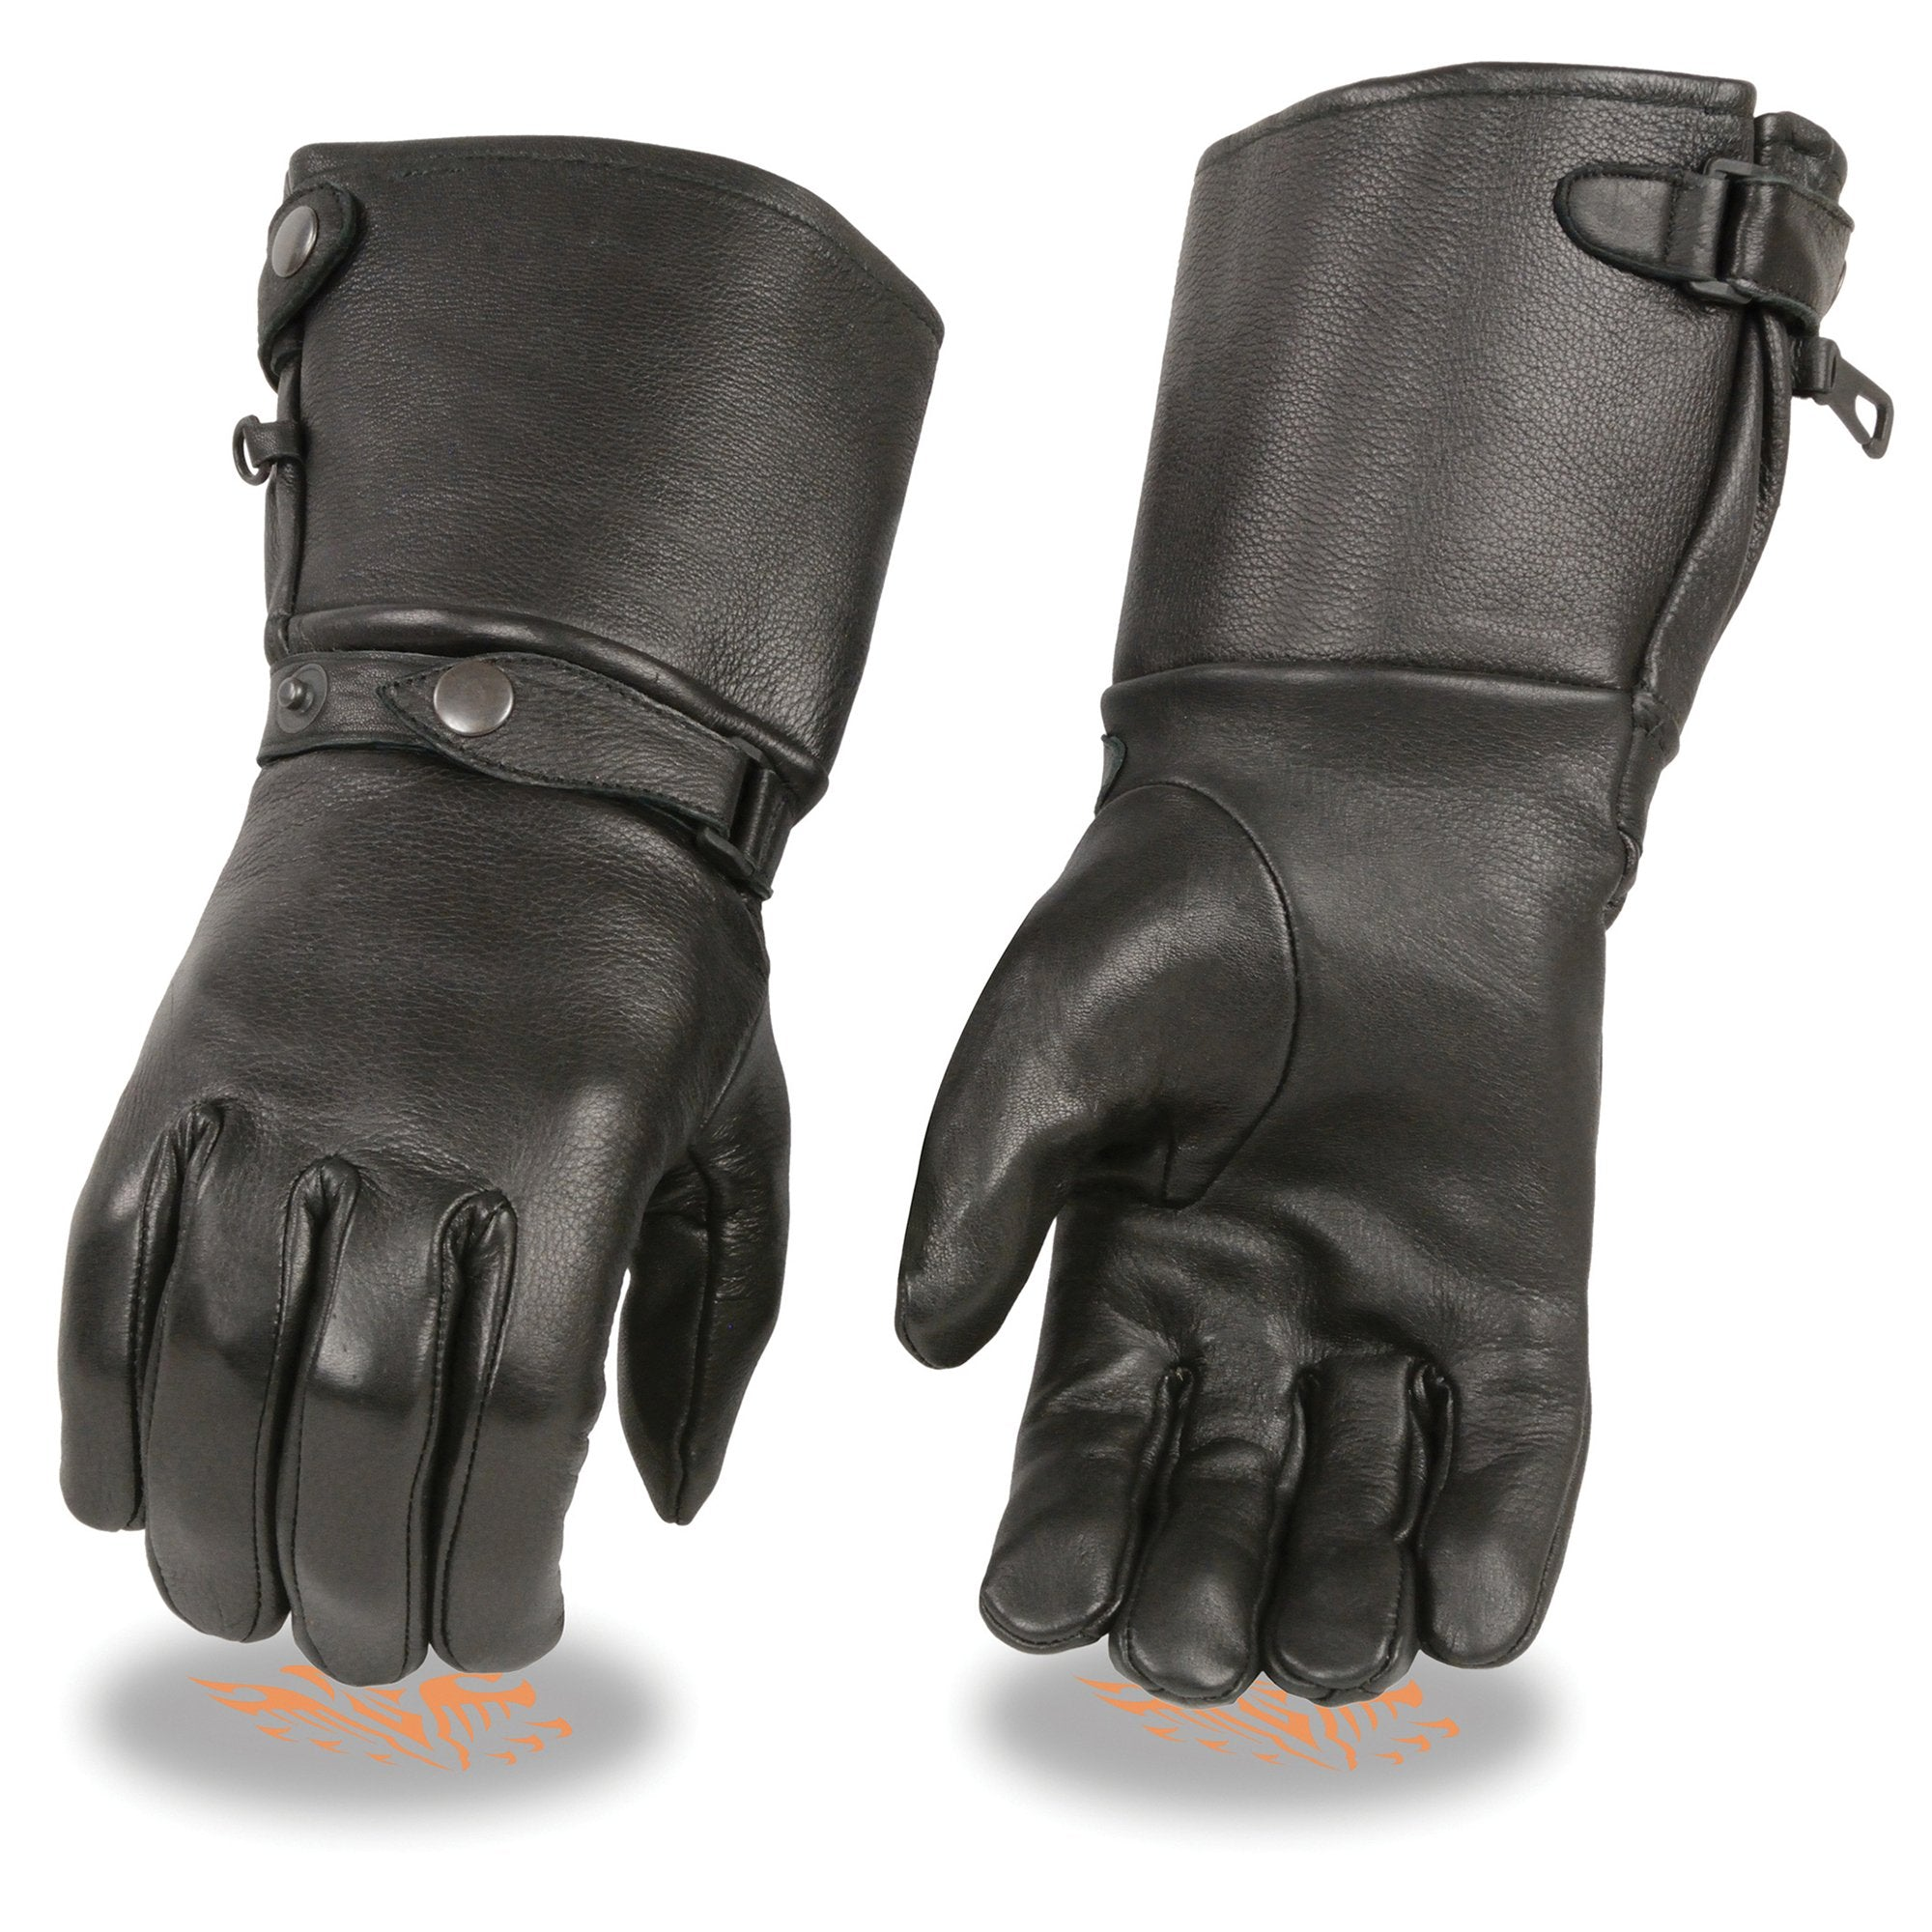 Milwaukee Leather SH857 Men's Deerskin Thermal Lined Gauntlet Gloves withSnap Wrist and Cuff